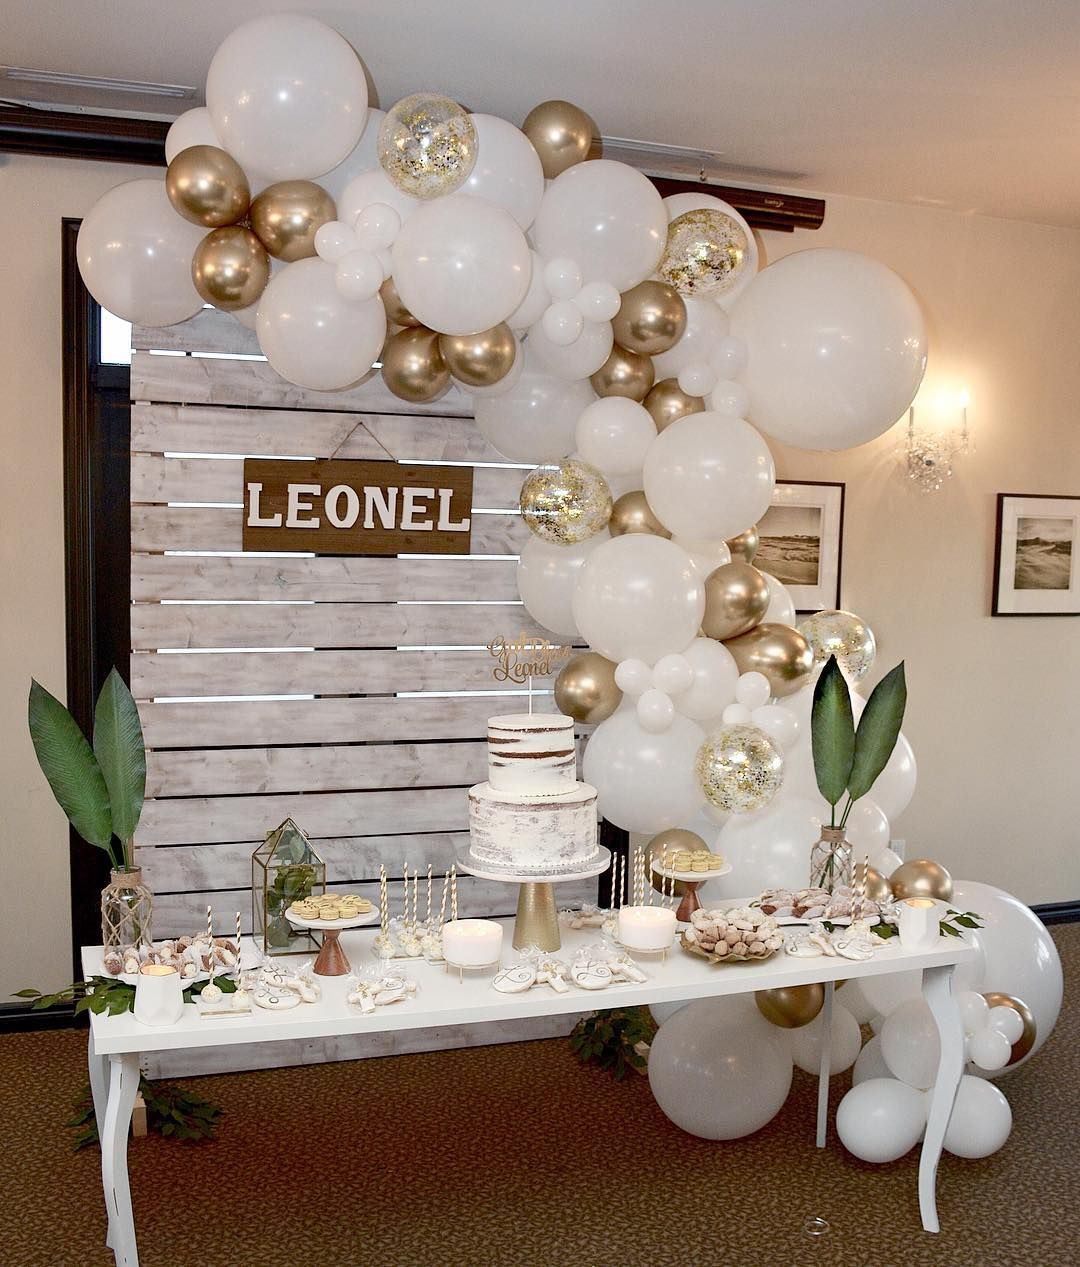 """Balloons Kids Party ideas #balloons #kidsparty #party #decoration WeBalloonz on Instagram: """"What amazing set up done by our client! Everything looked amazing"""